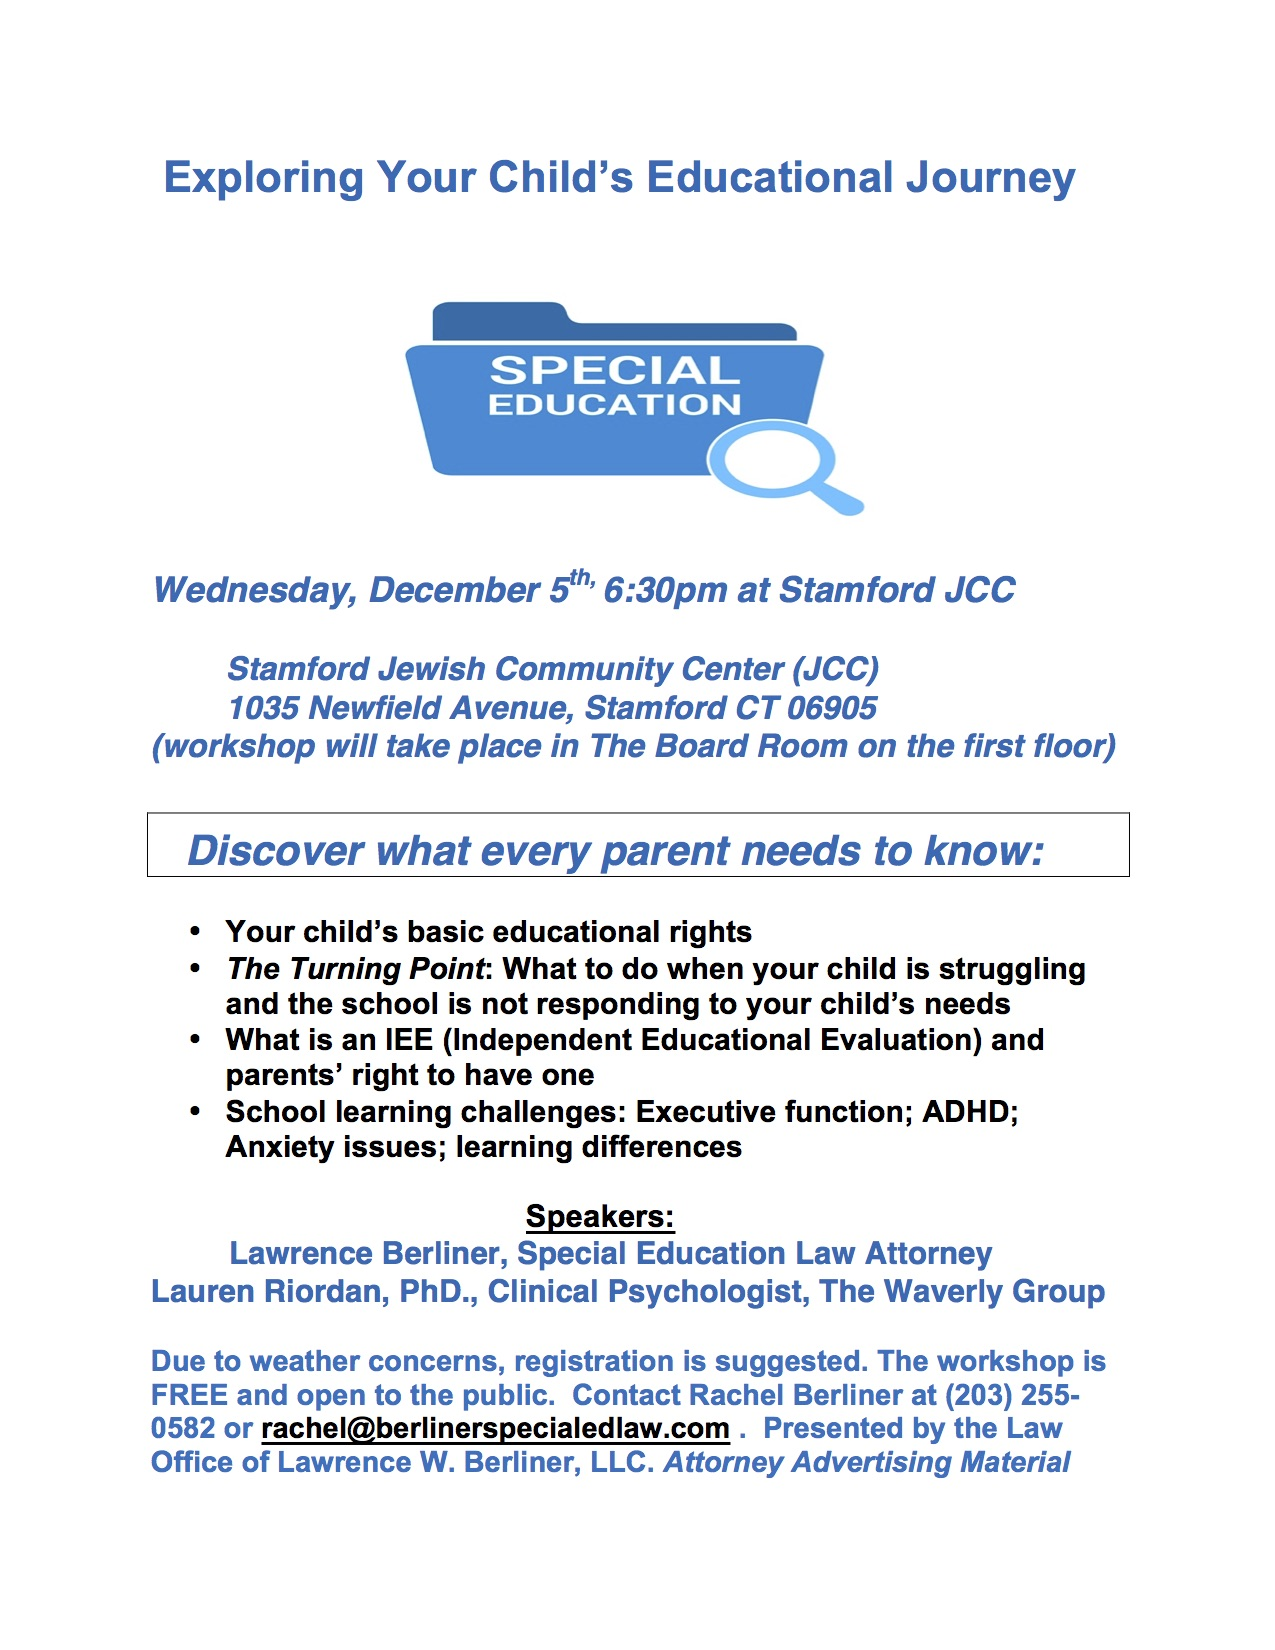 Parents Know Your Special Education >> December 5th Special Education Parent Workshop In Stamford